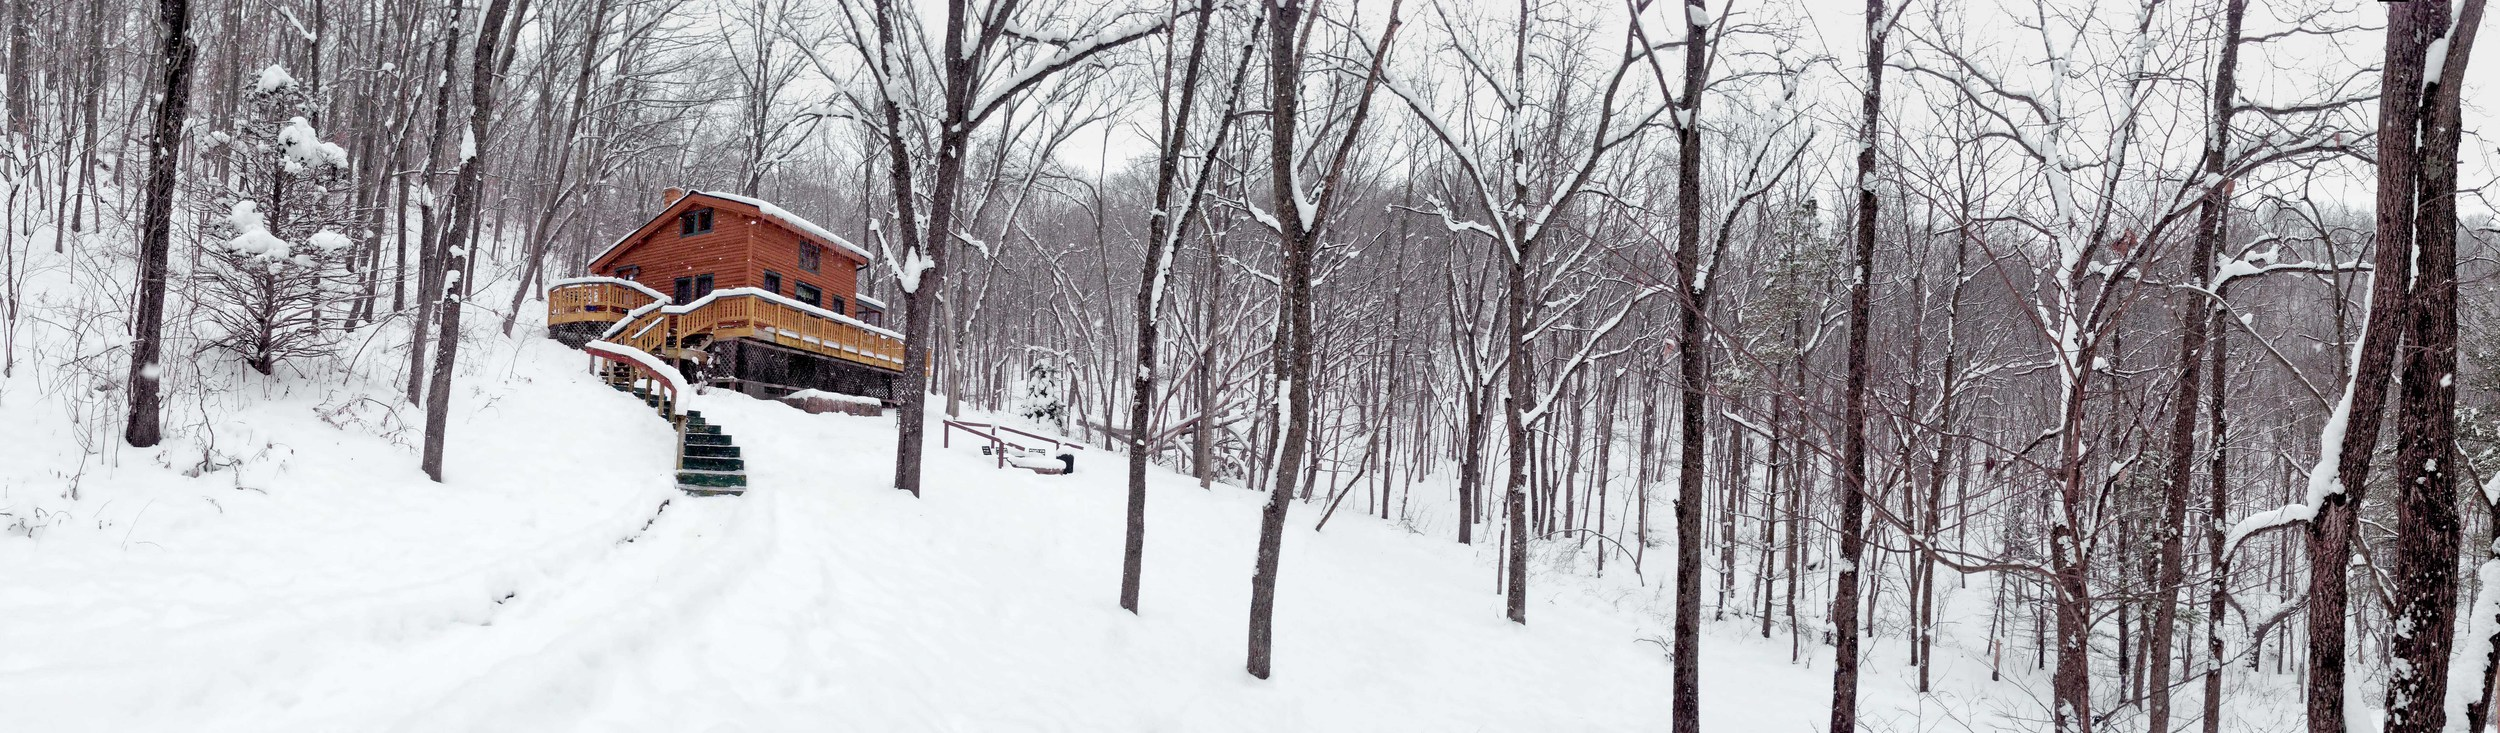 hillside exterior snow low.jpg